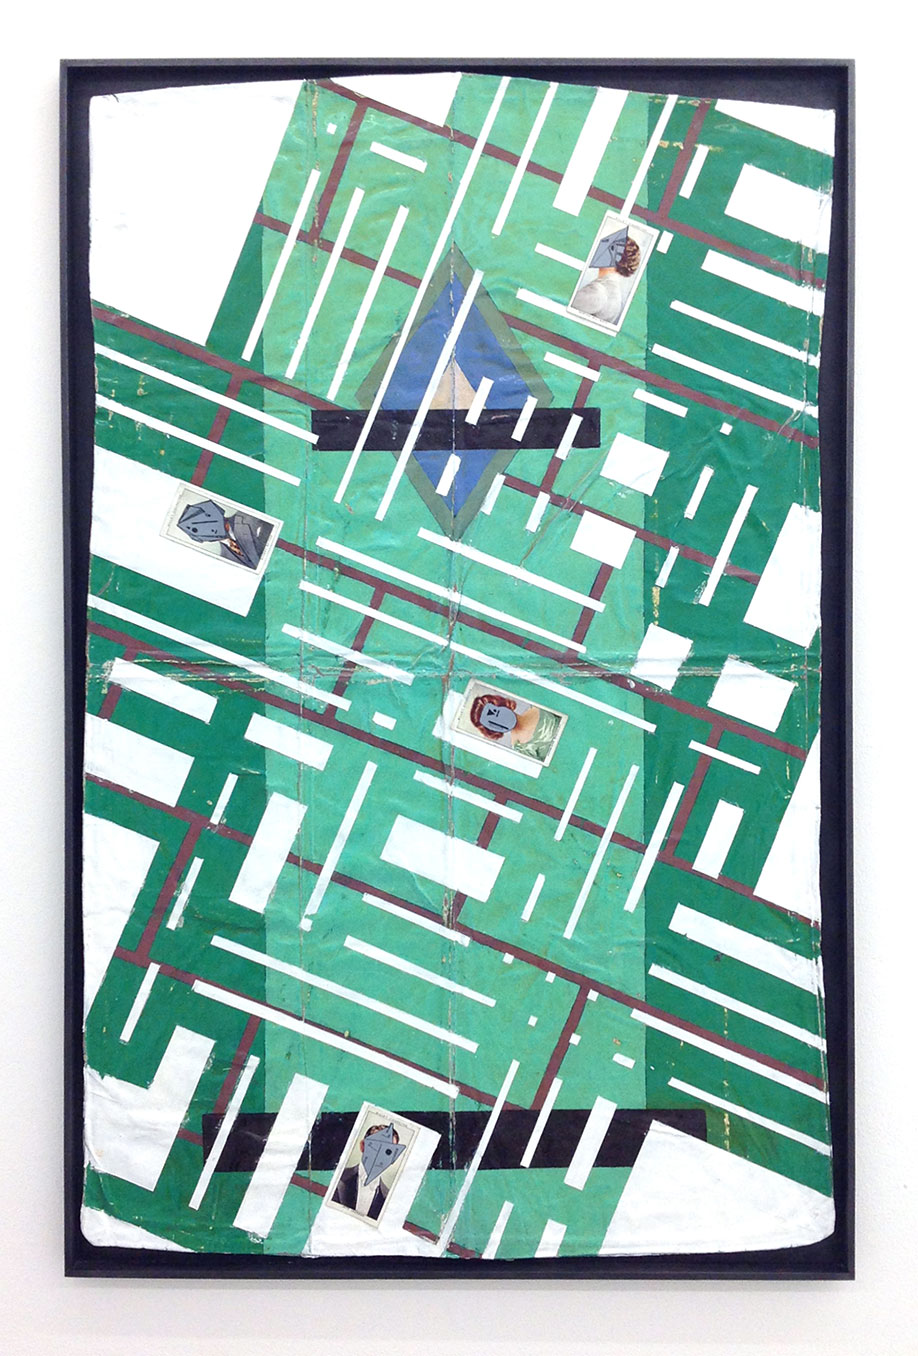 <b>Title: </b>METROPOLIS<br /><b>Year: </b>2019<br /><b>Medium: </b>enamel, acrylic, varnish, ink and cigarette cards in graphite and pine frame<br /><b>Size: </b>76.5 x 51 x 2 cm